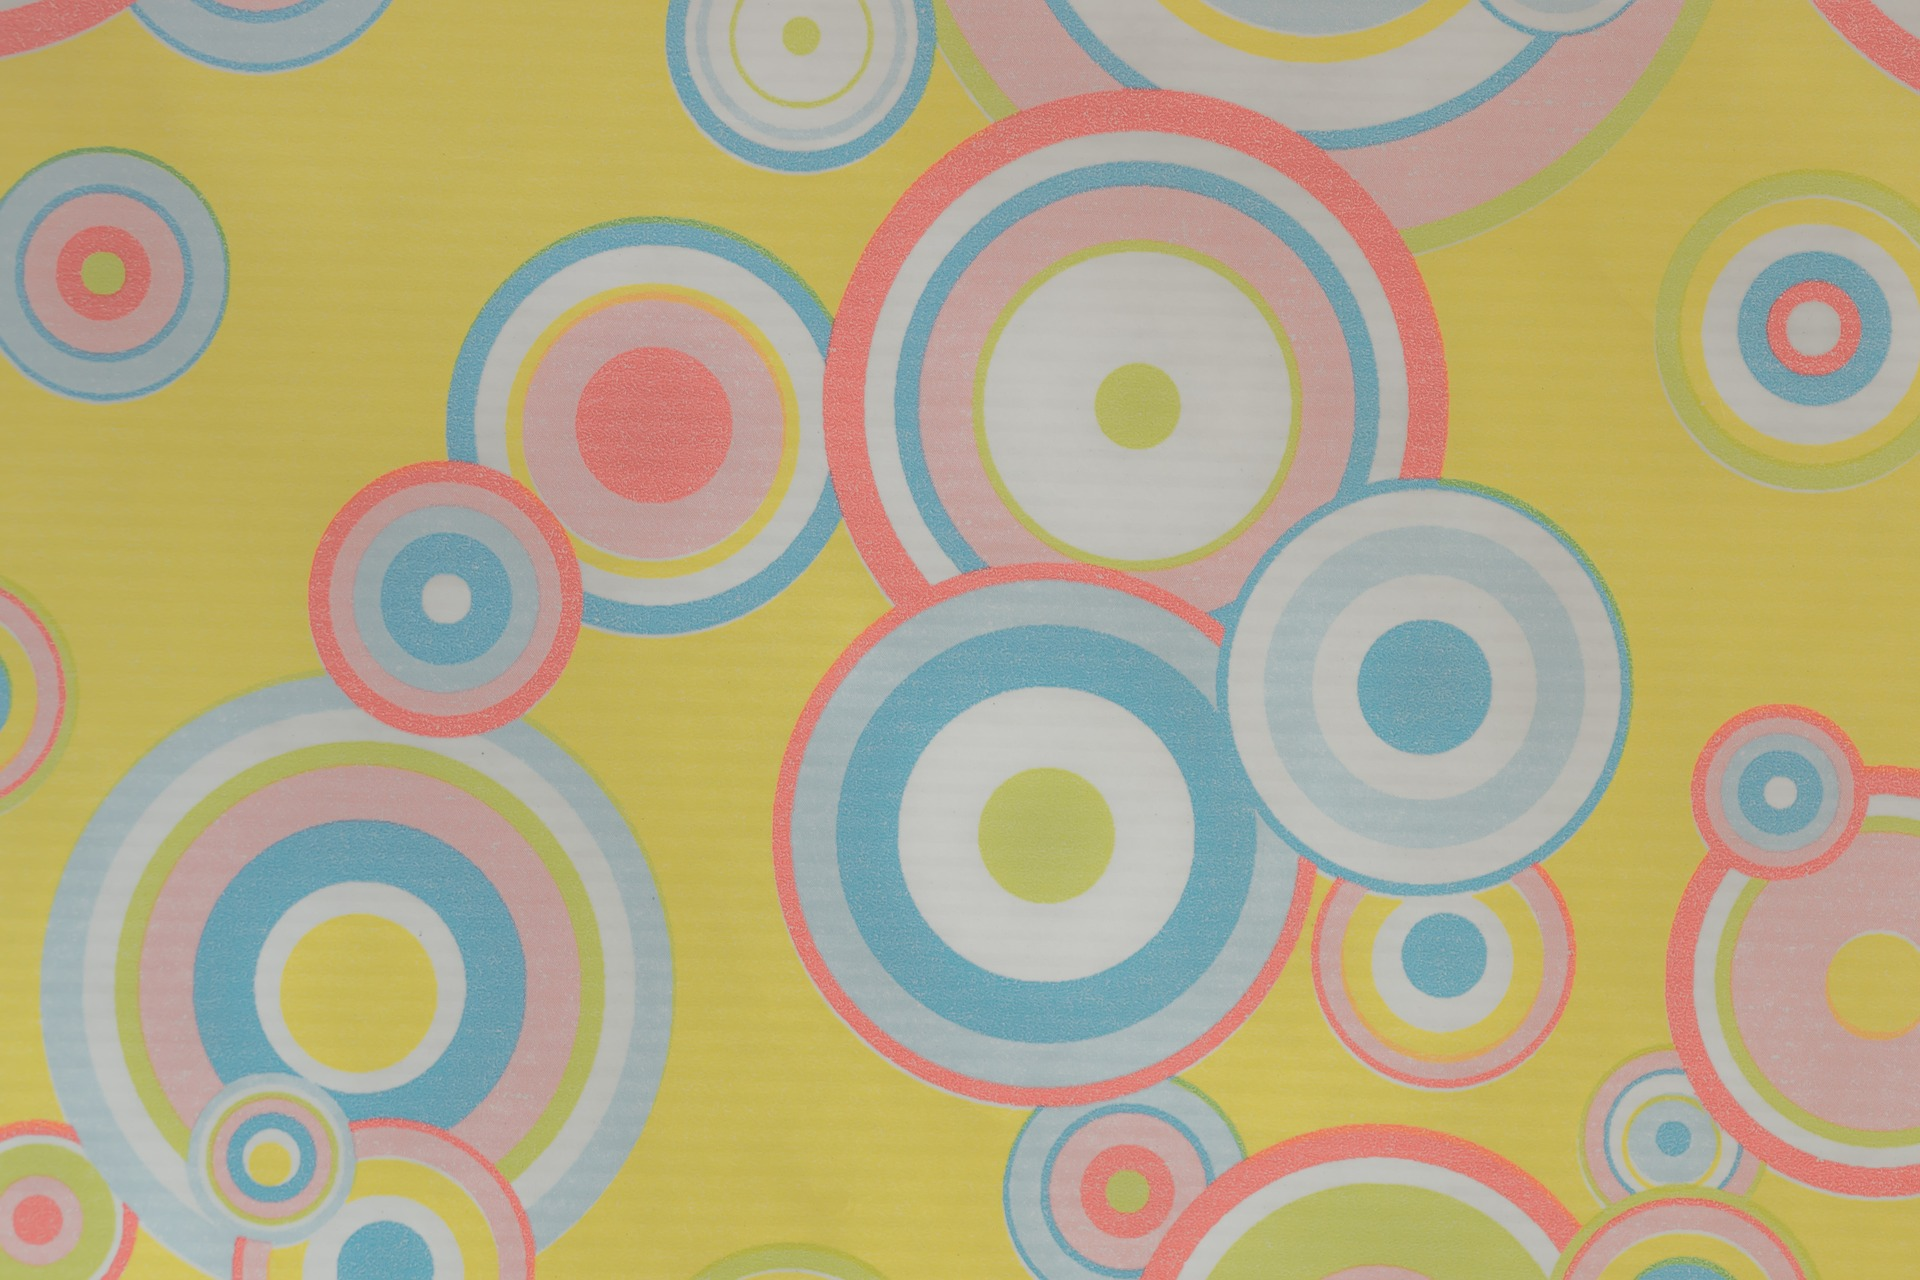 Abstract retro circles in 70s style.